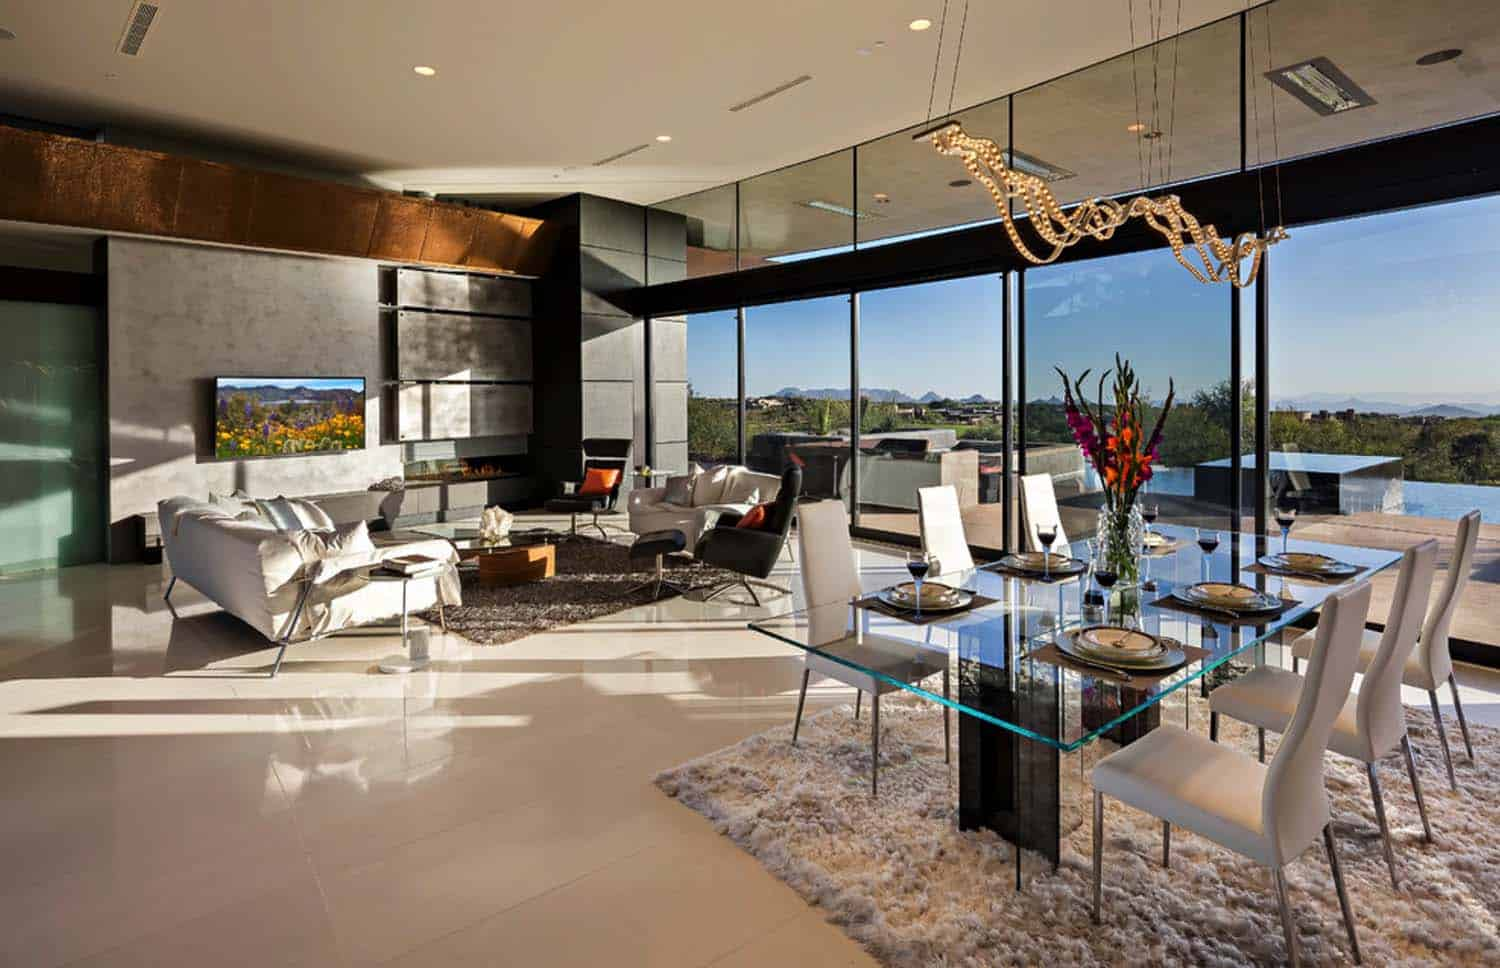 Dream Home In The Arizona Desert Merges Indoor Outdoor Living